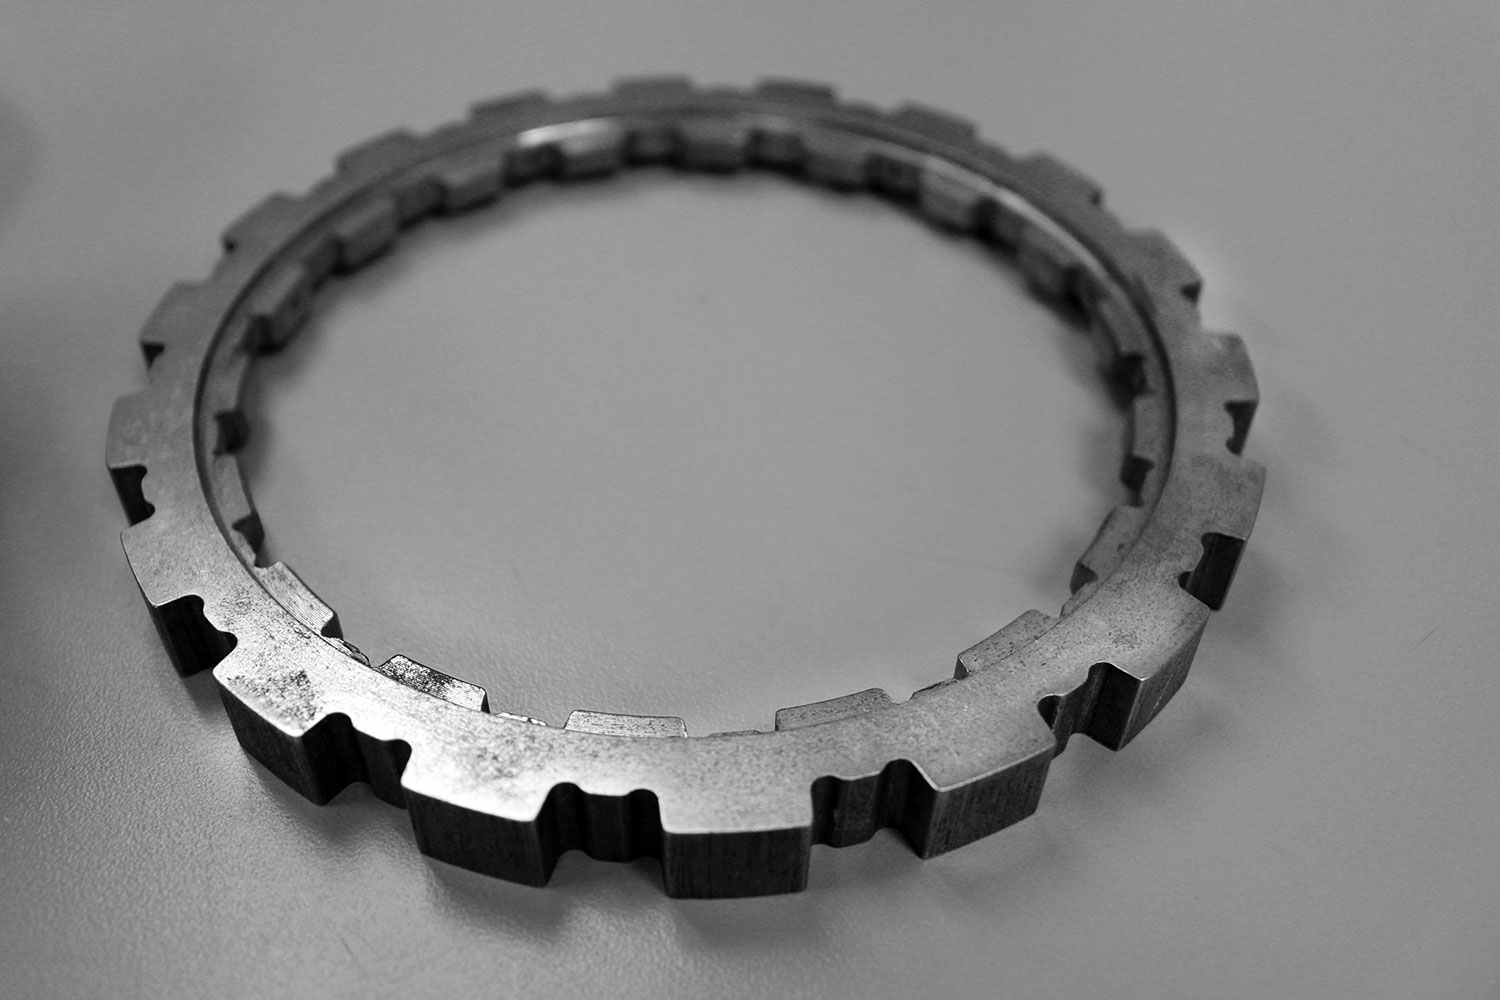 Component made with exterior broach